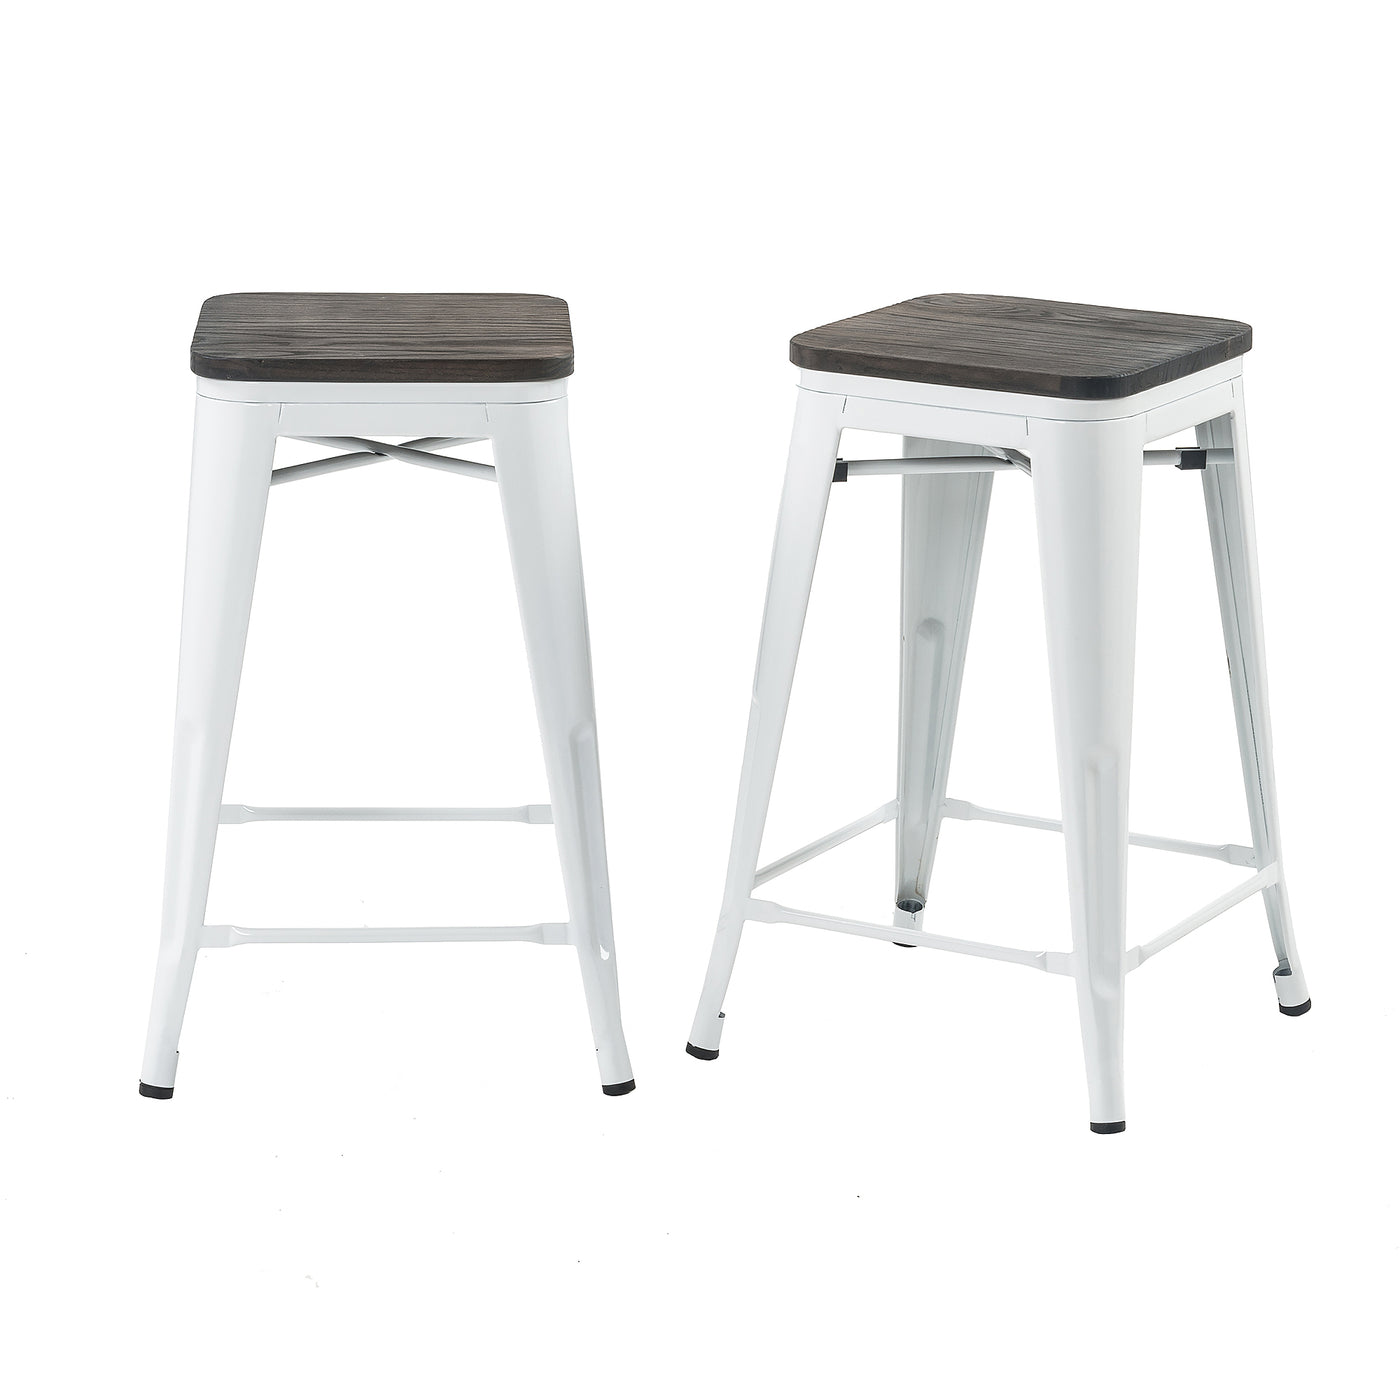 Outstanding Buschman Store Metal Bar Stools 24 Counter Height Indoor Ncnpc Chair Design For Home Ncnpcorg